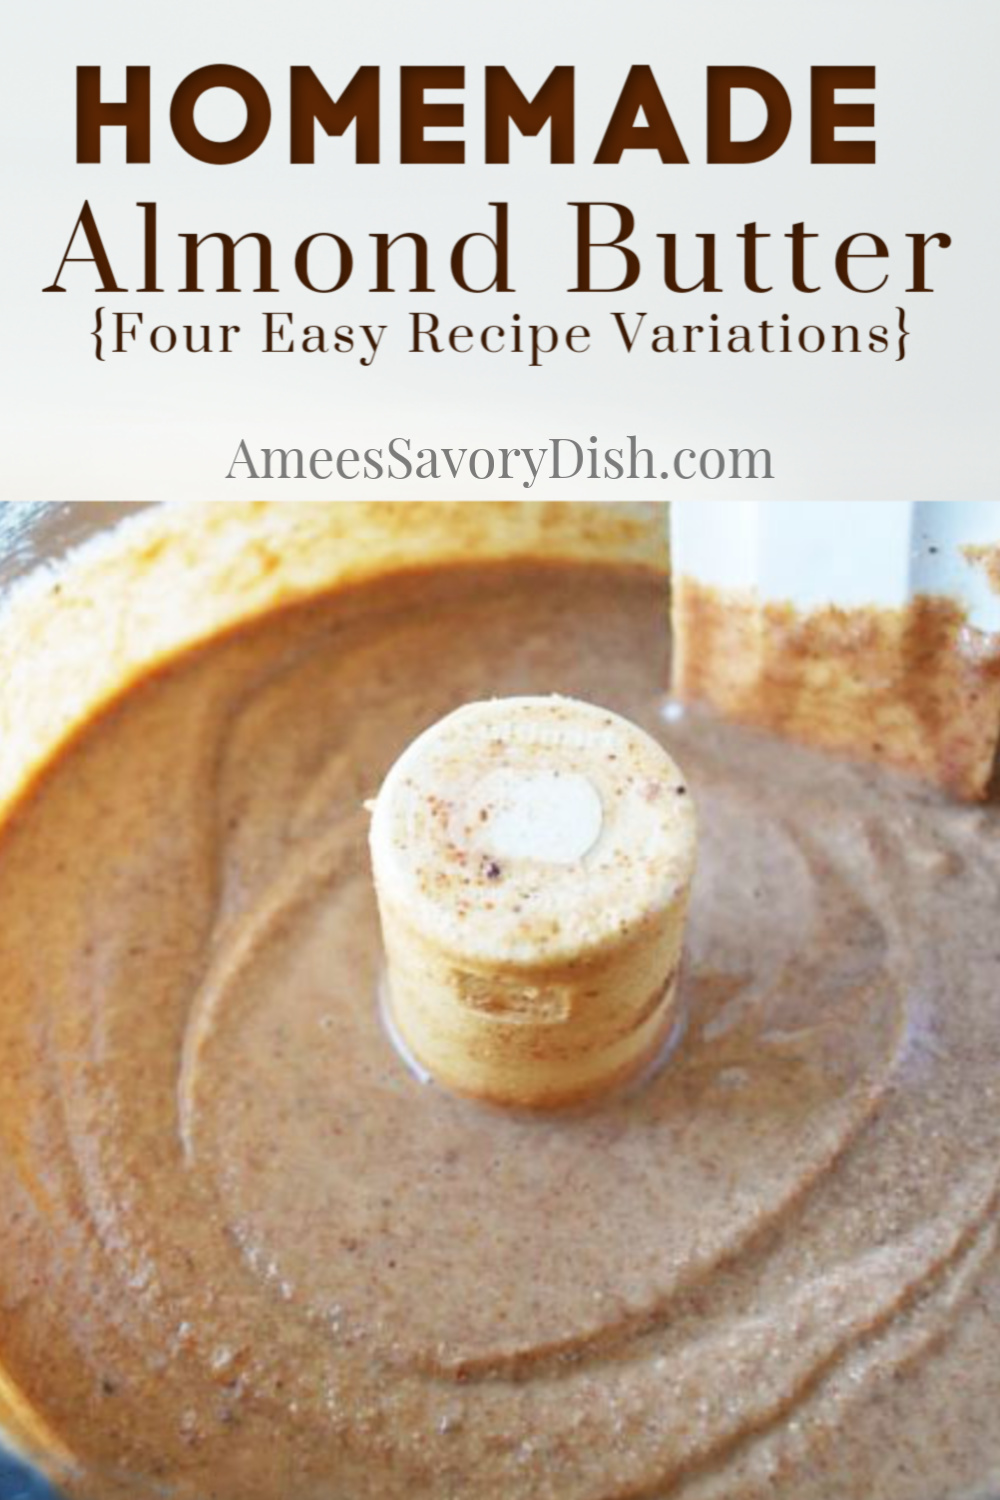 A simple and delicious recipe for making homemade almond butter in a food processor with four different flavor variations. via @Ameessavorydish